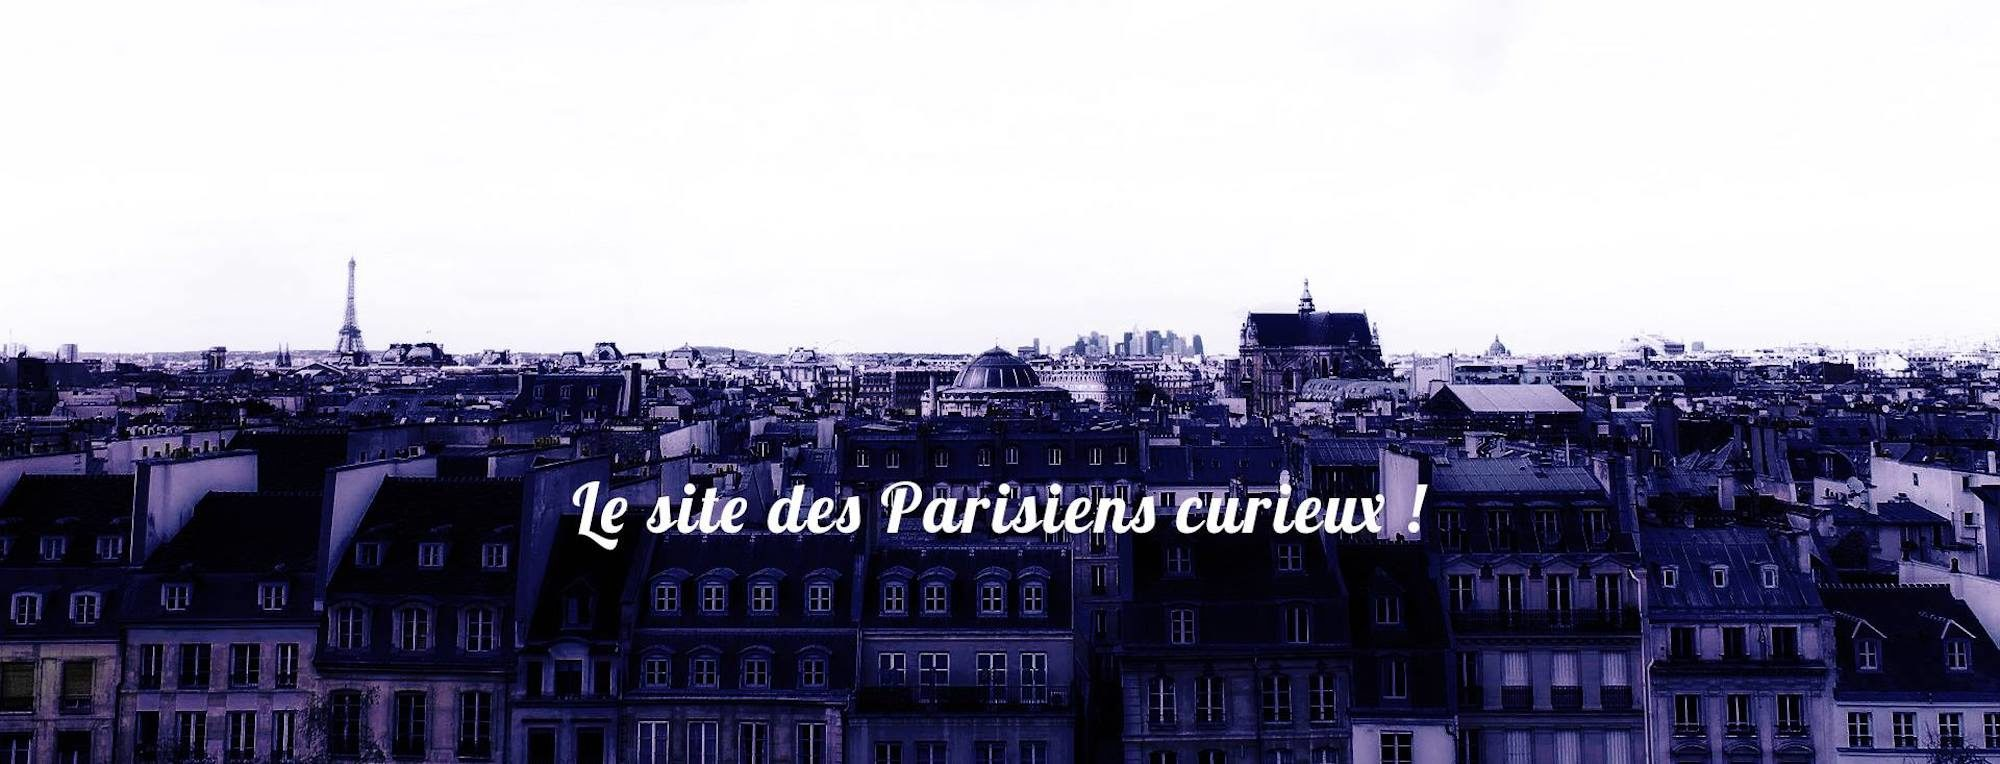 The Paris skyline with the zinc rooftops and chimney tops in the foreground and the words 'Le site des Parisiens curieux' (the website for curious Parisians) splashed across the image.